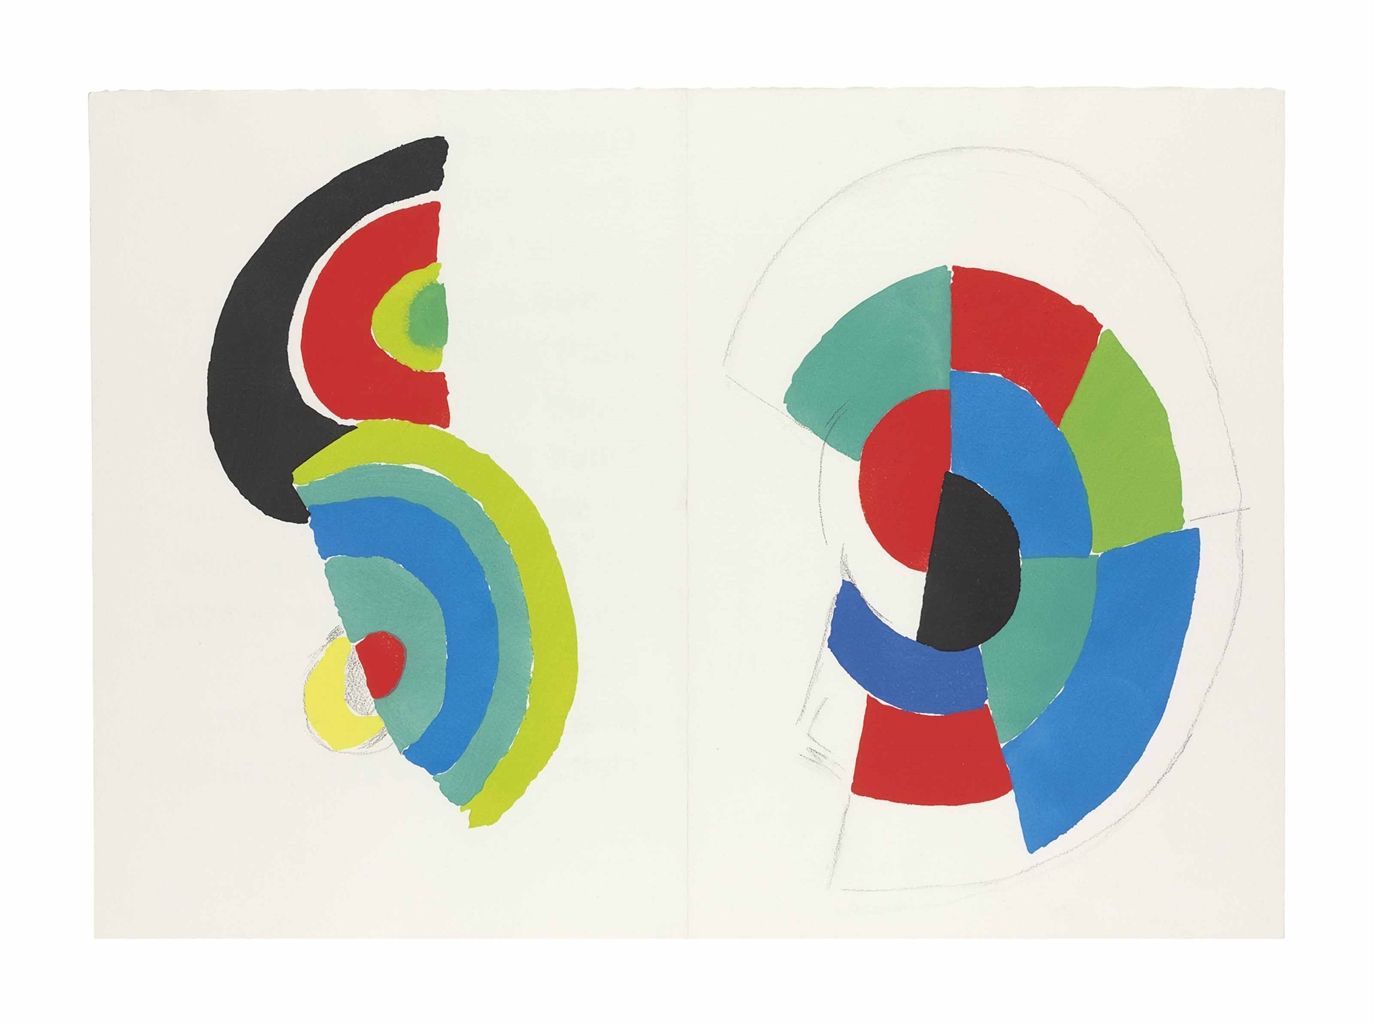 Sonia Delaunay-Arthur Rimbaud, Les Illuminations, Jacques Damase, Paris, 1973-1973